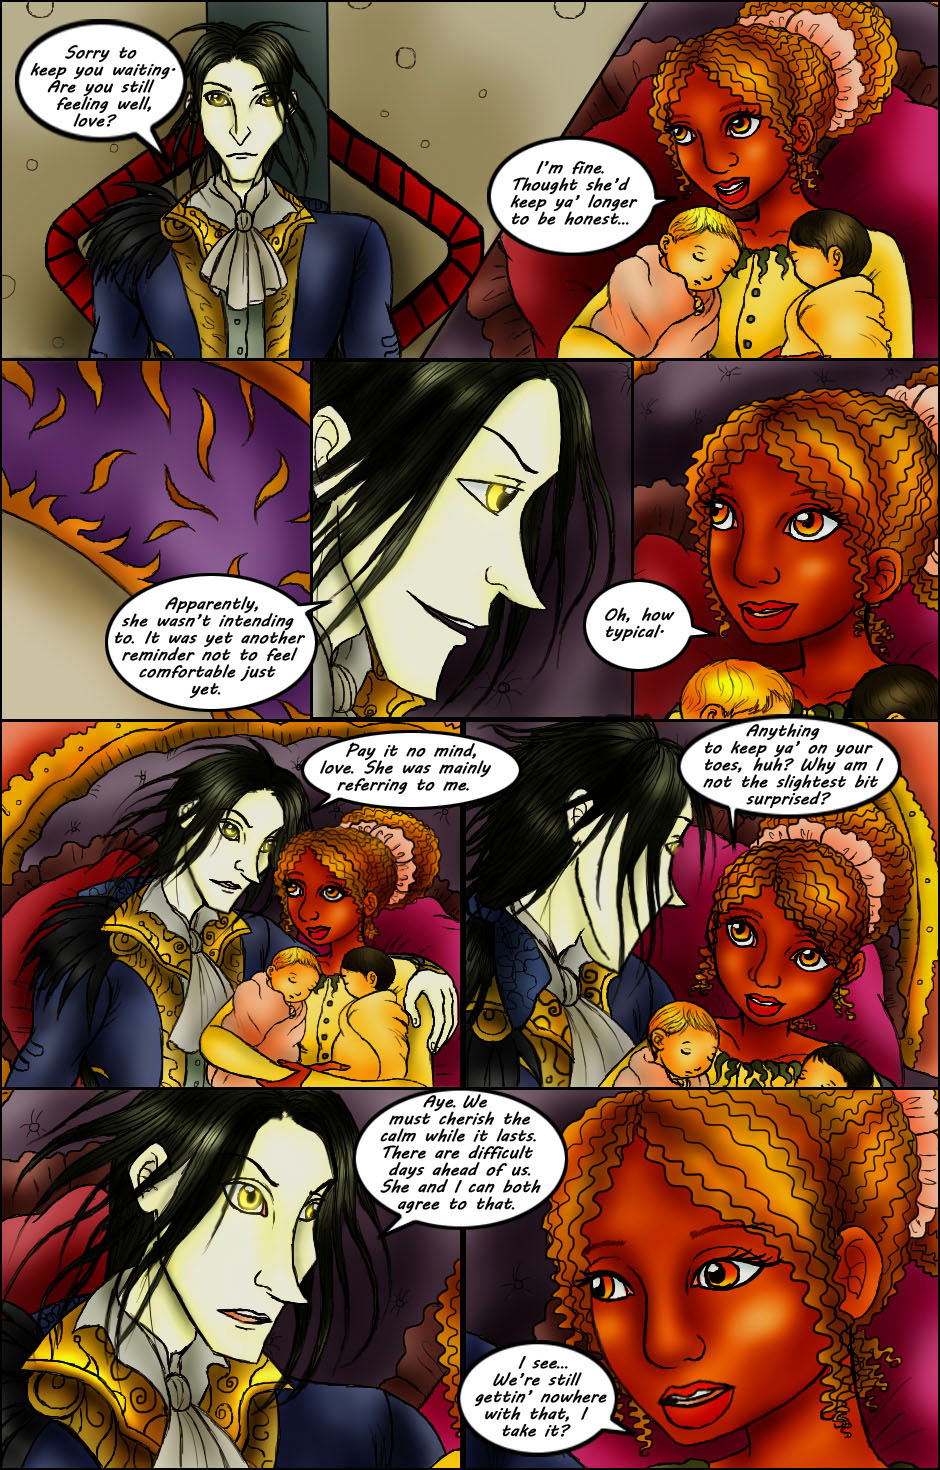 Page 270 – The Calm